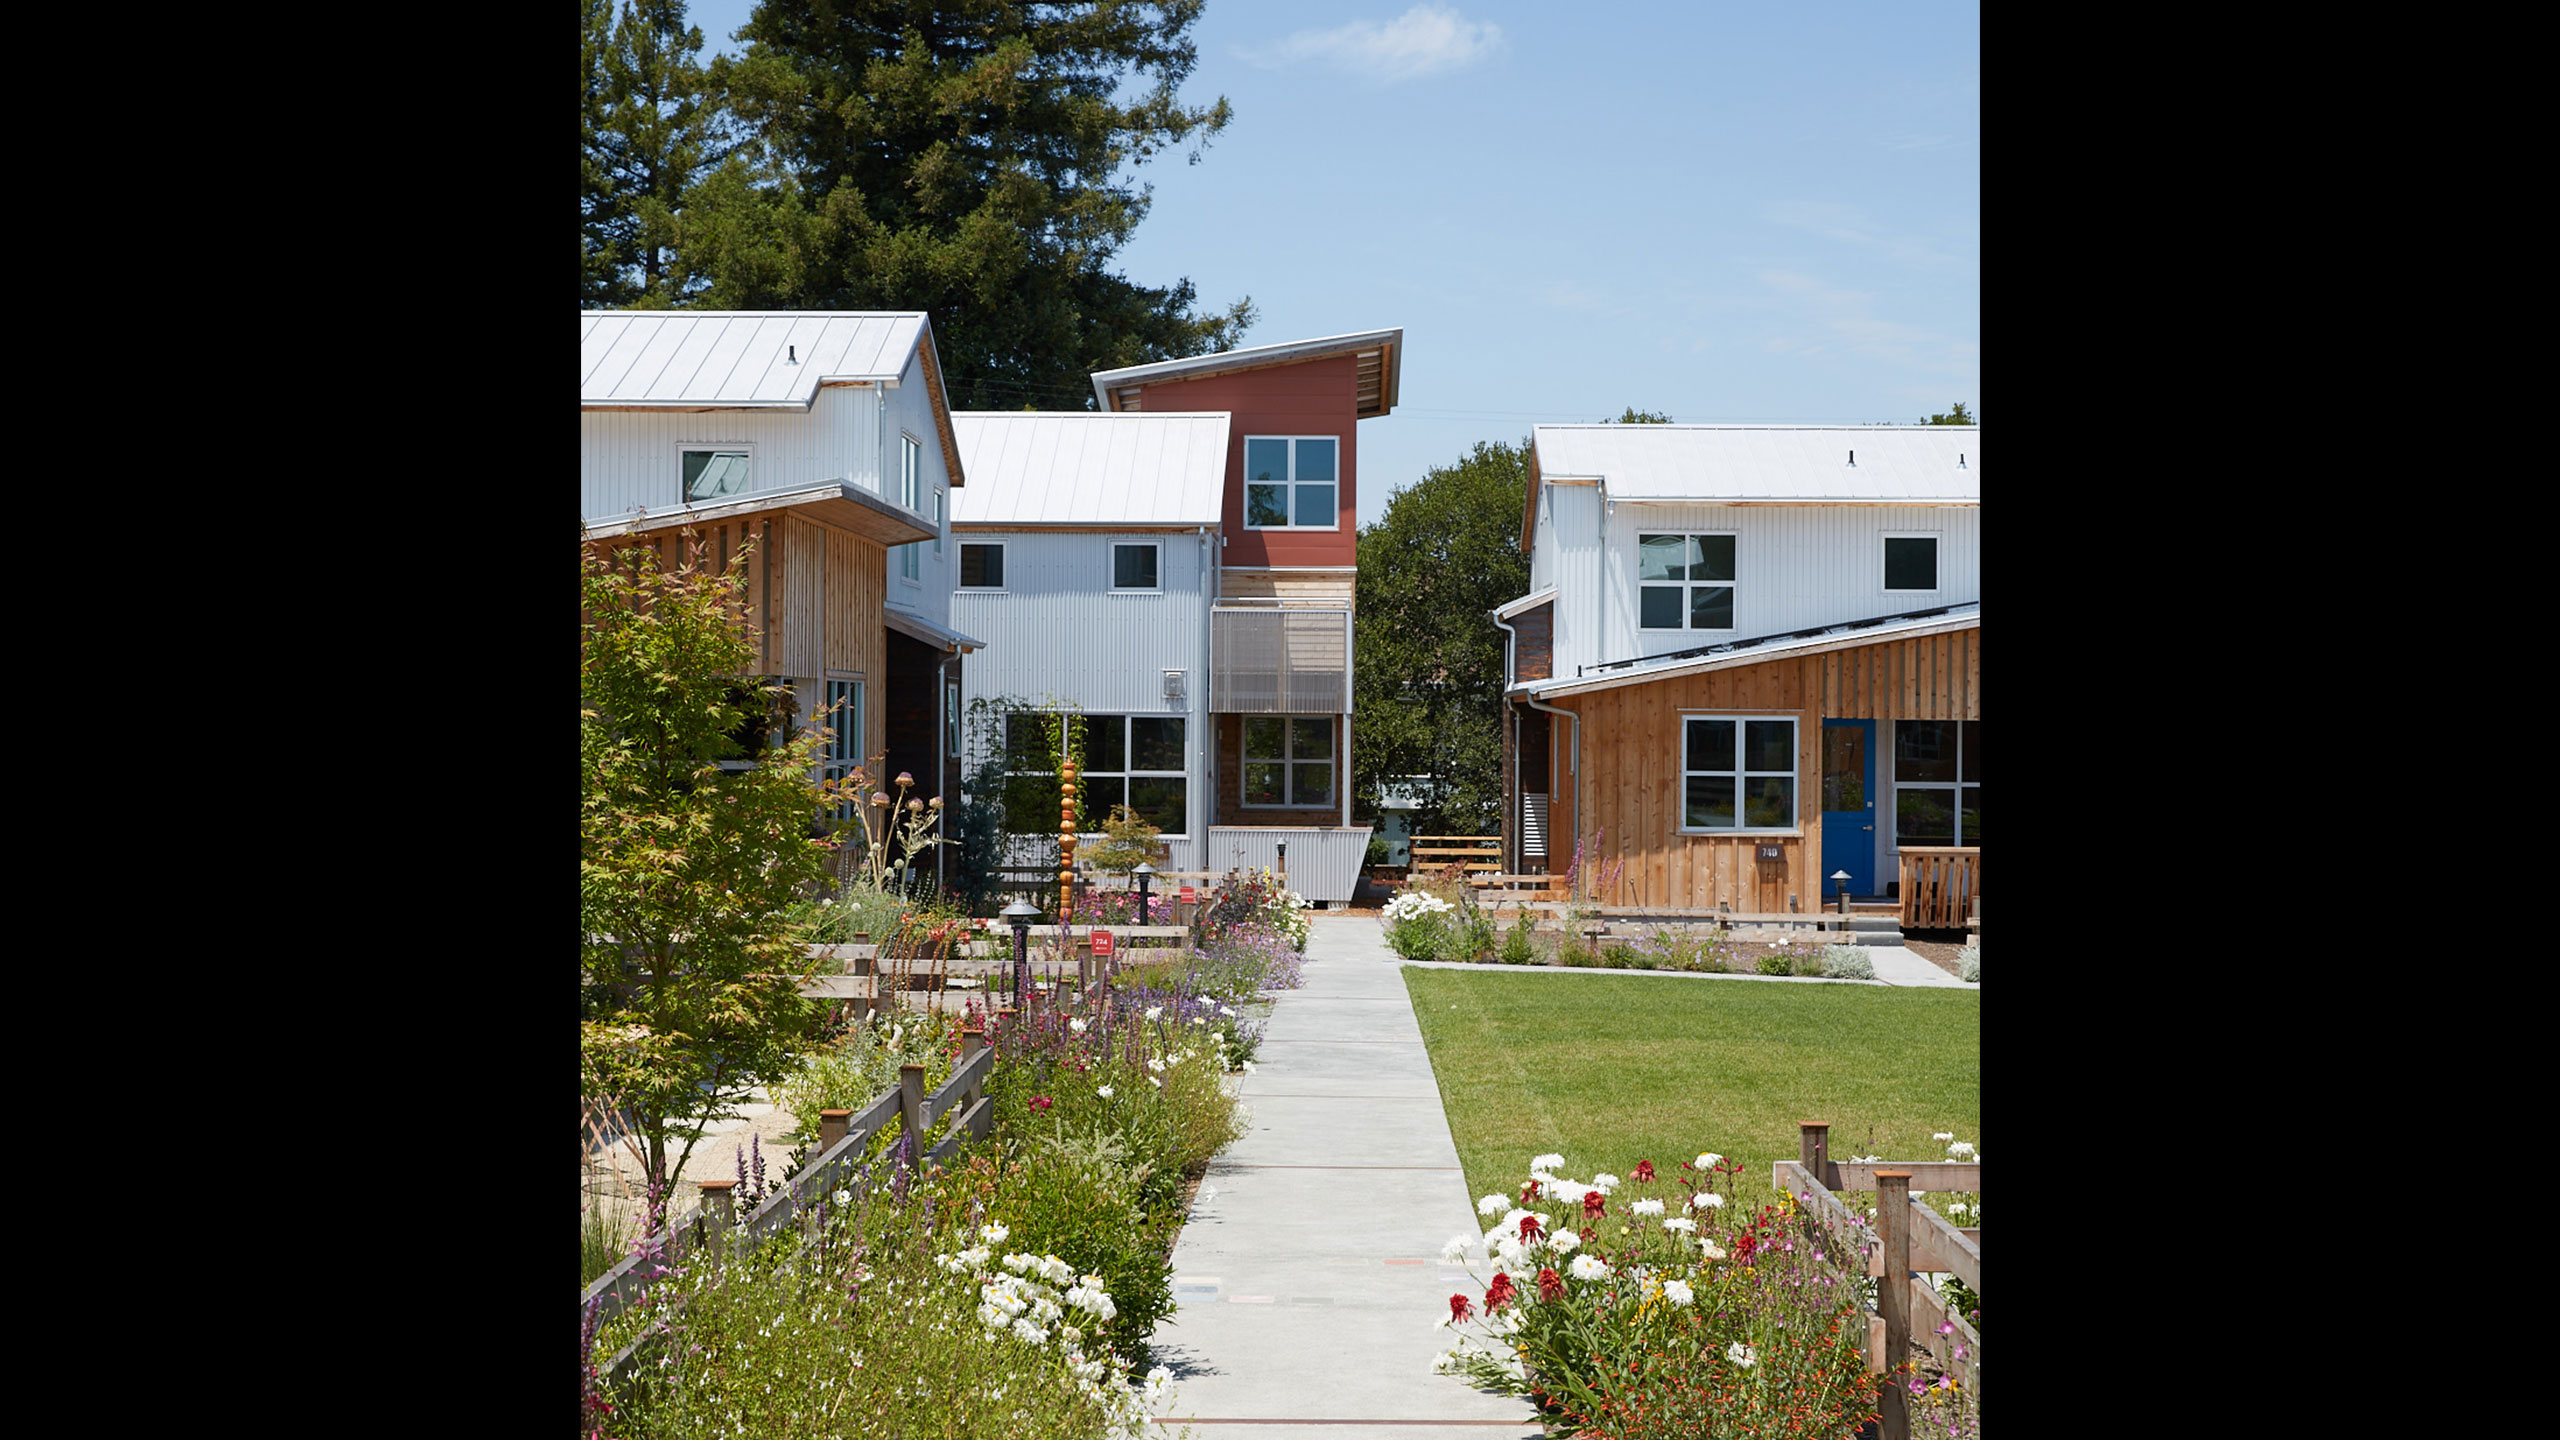 Sustainable-Architecture-Sonoma-County-Keller-Court-houses-built-with-concrete-metal-and-natural-wood